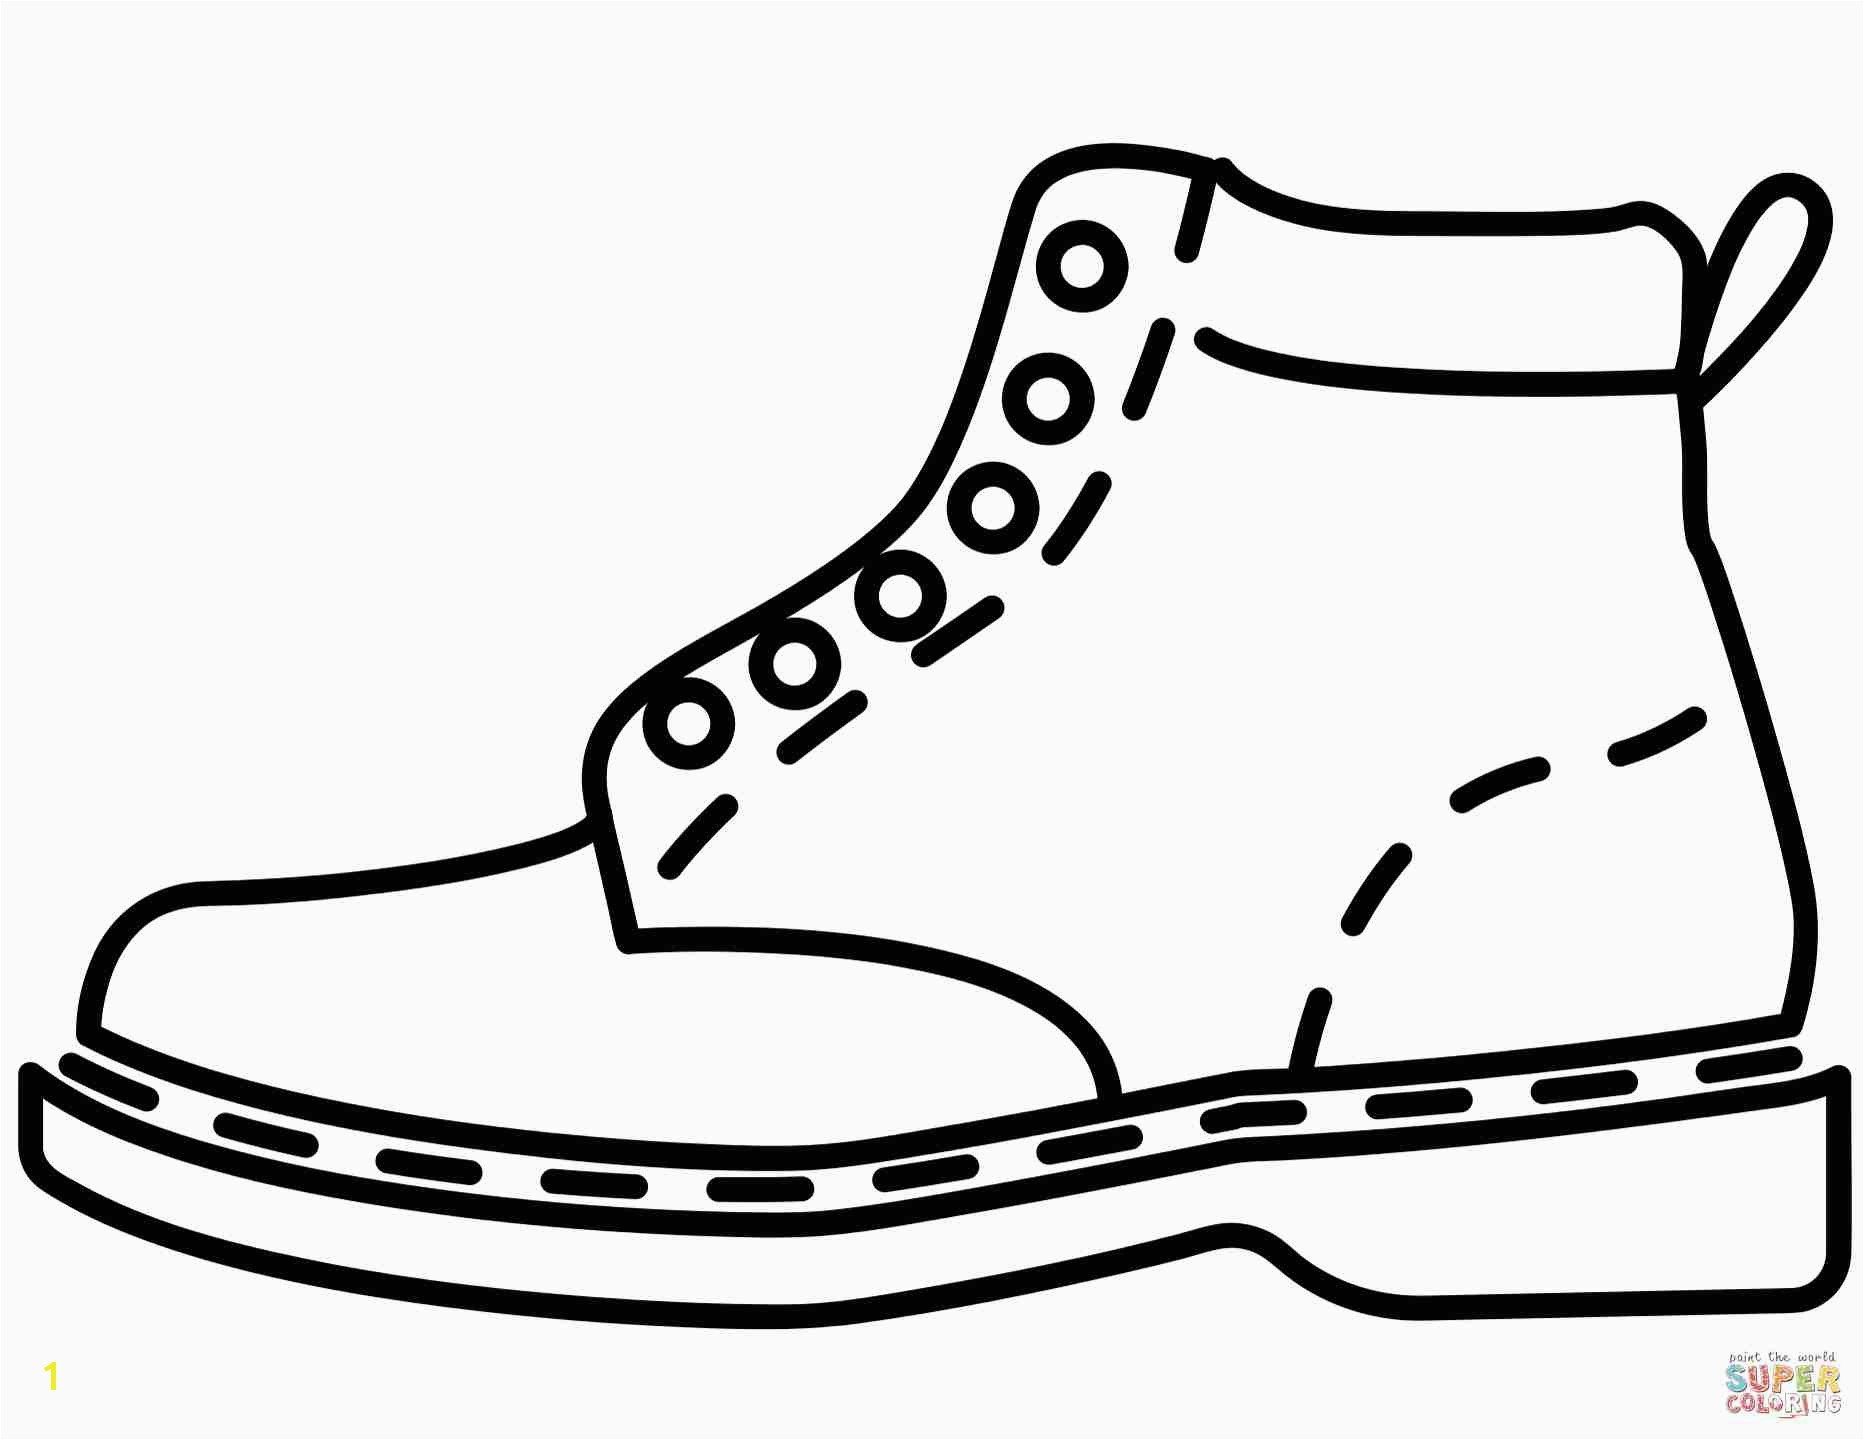 Printable Tennis Shoe Coloring Pages New Best Shoes Coloring Pages 18 for Your Picture Coloring Page